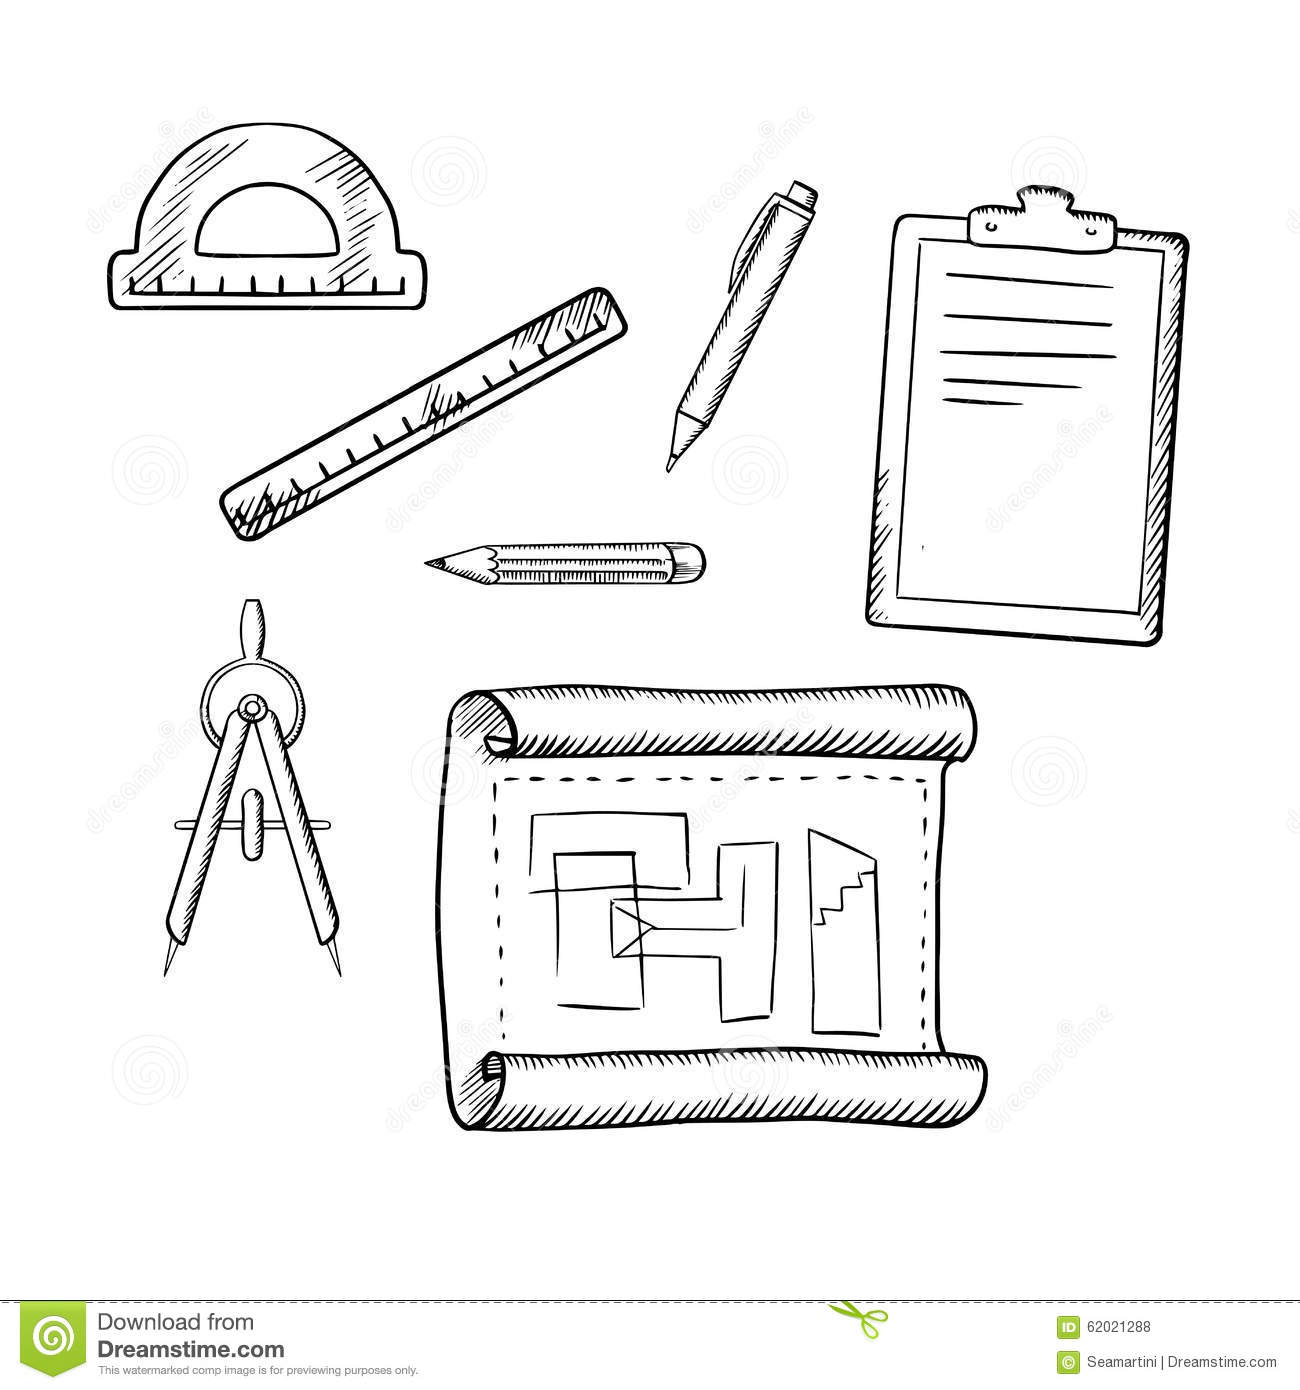 Croquis de dessin et d 39 outils d 39 architecte illustration de for Dessins d architecture bricolage